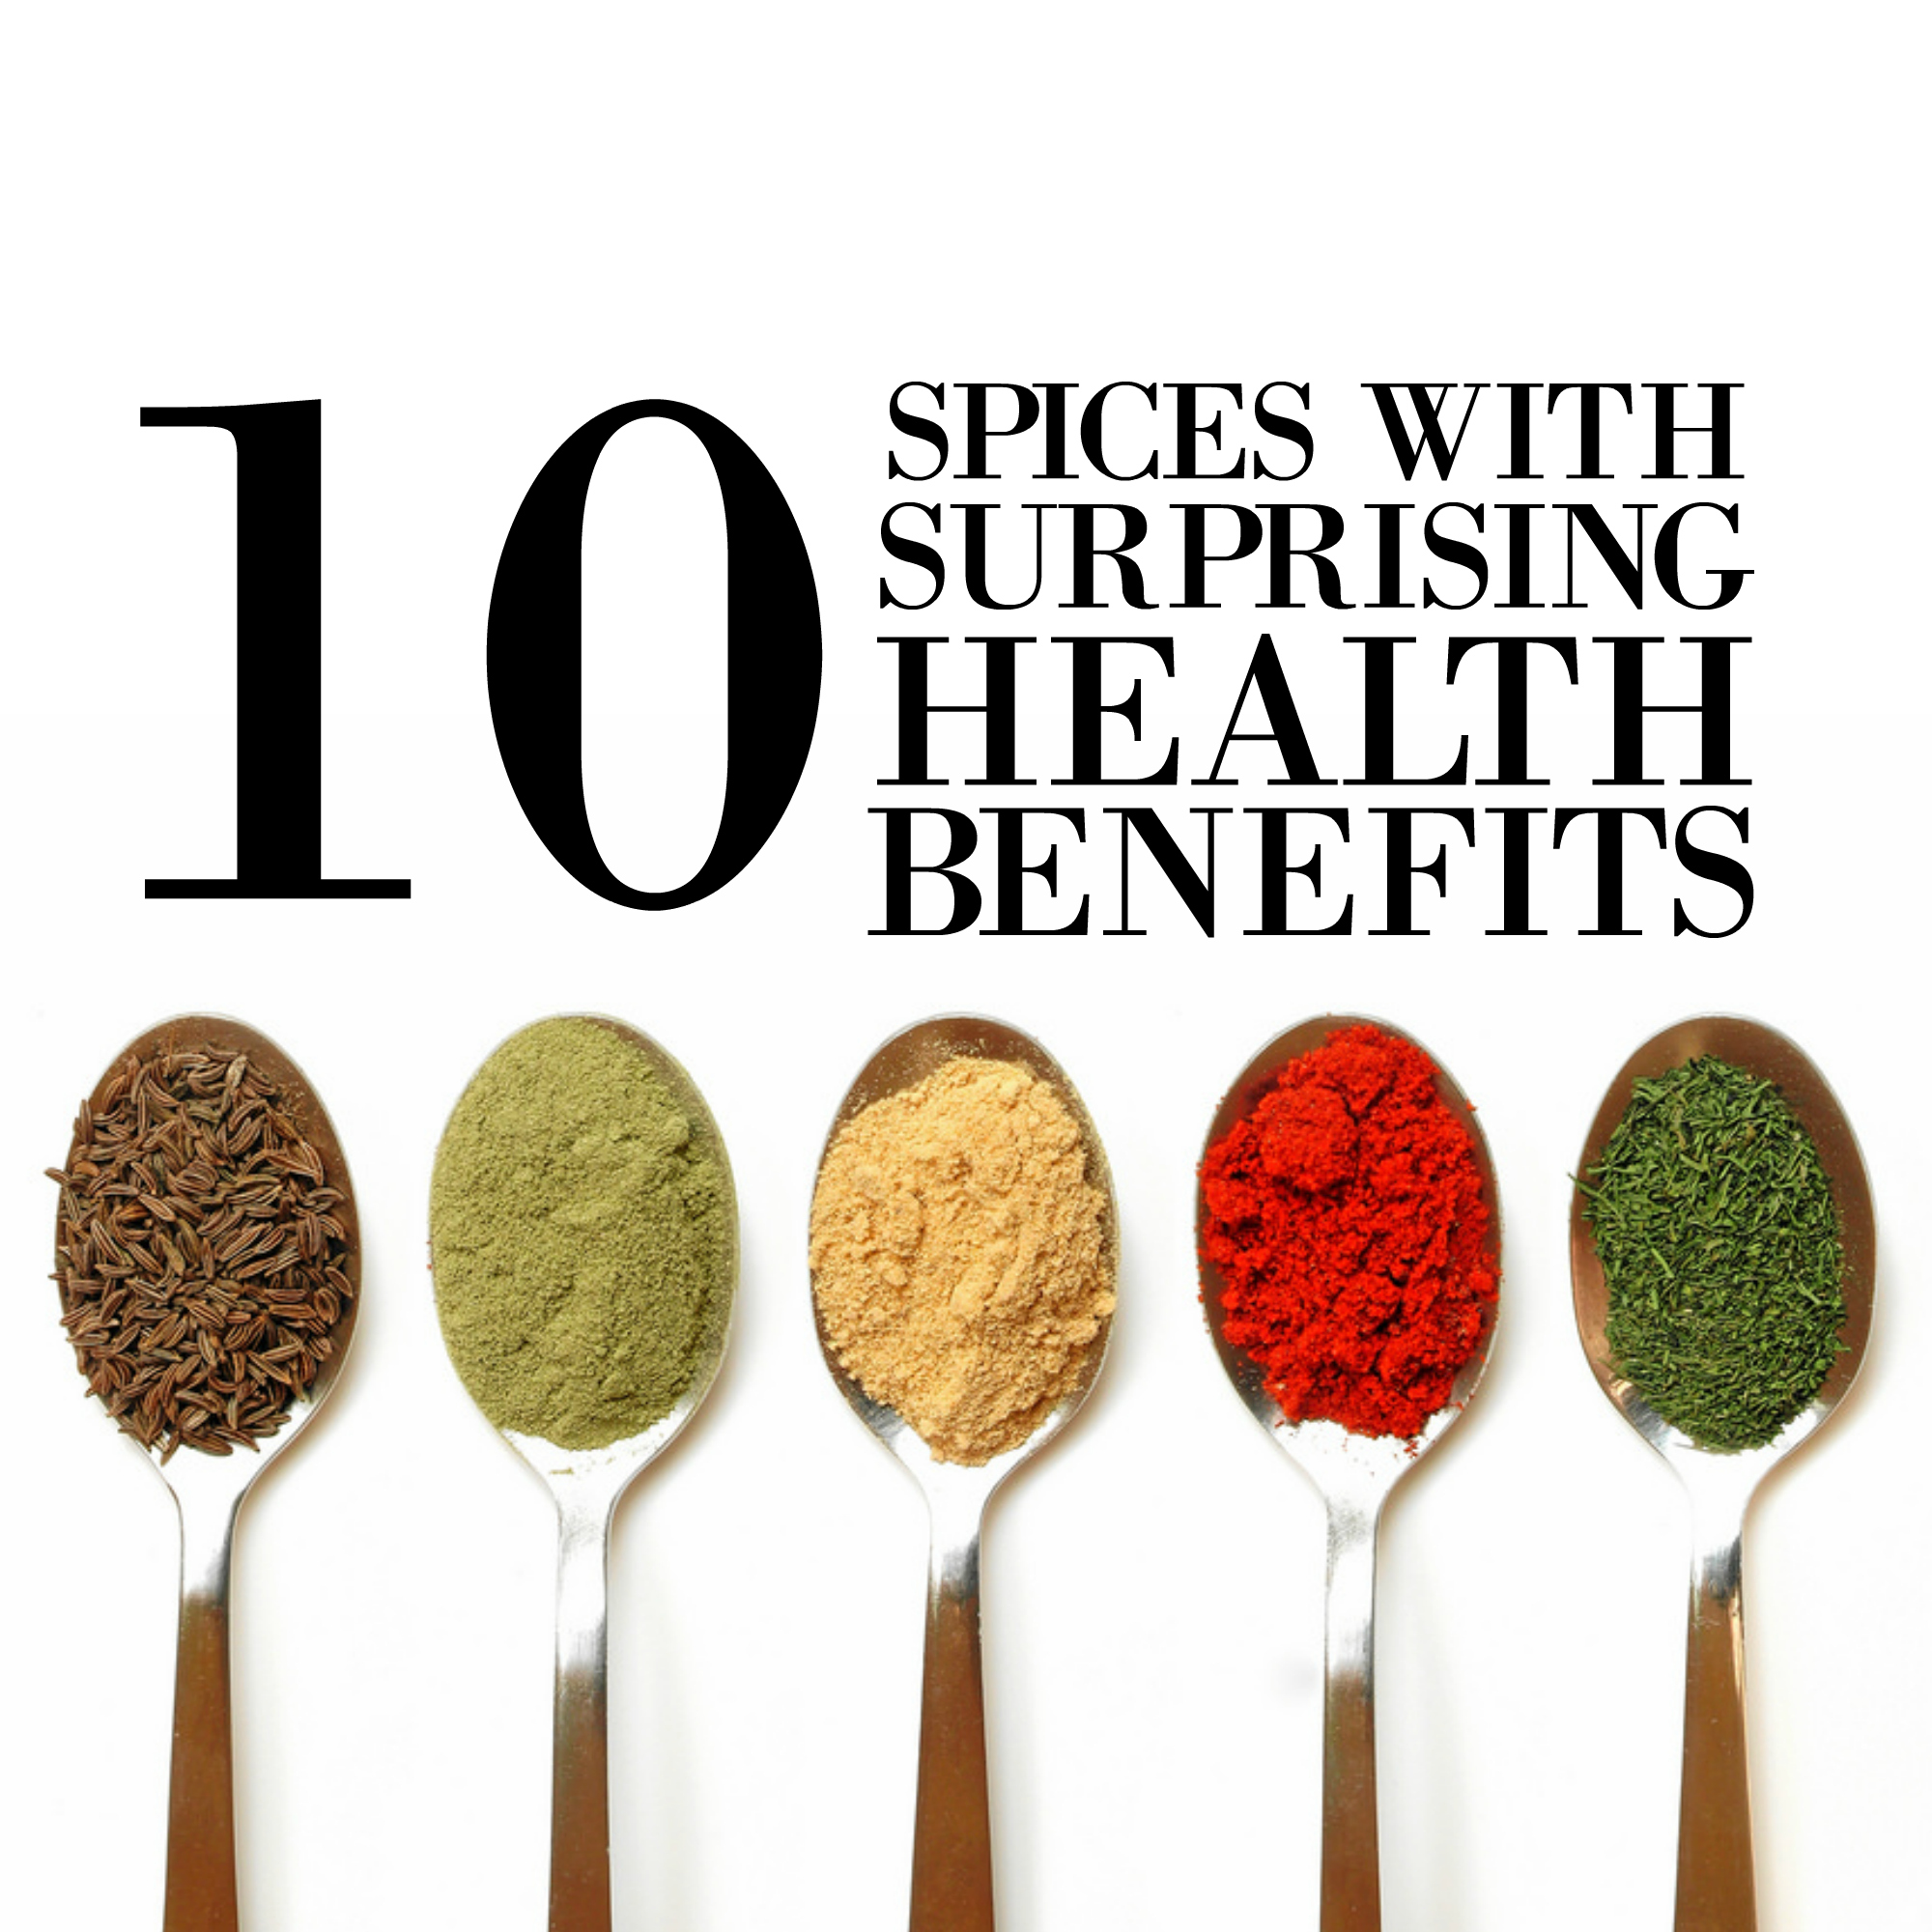 10 Spices with Surprising Health Benefits